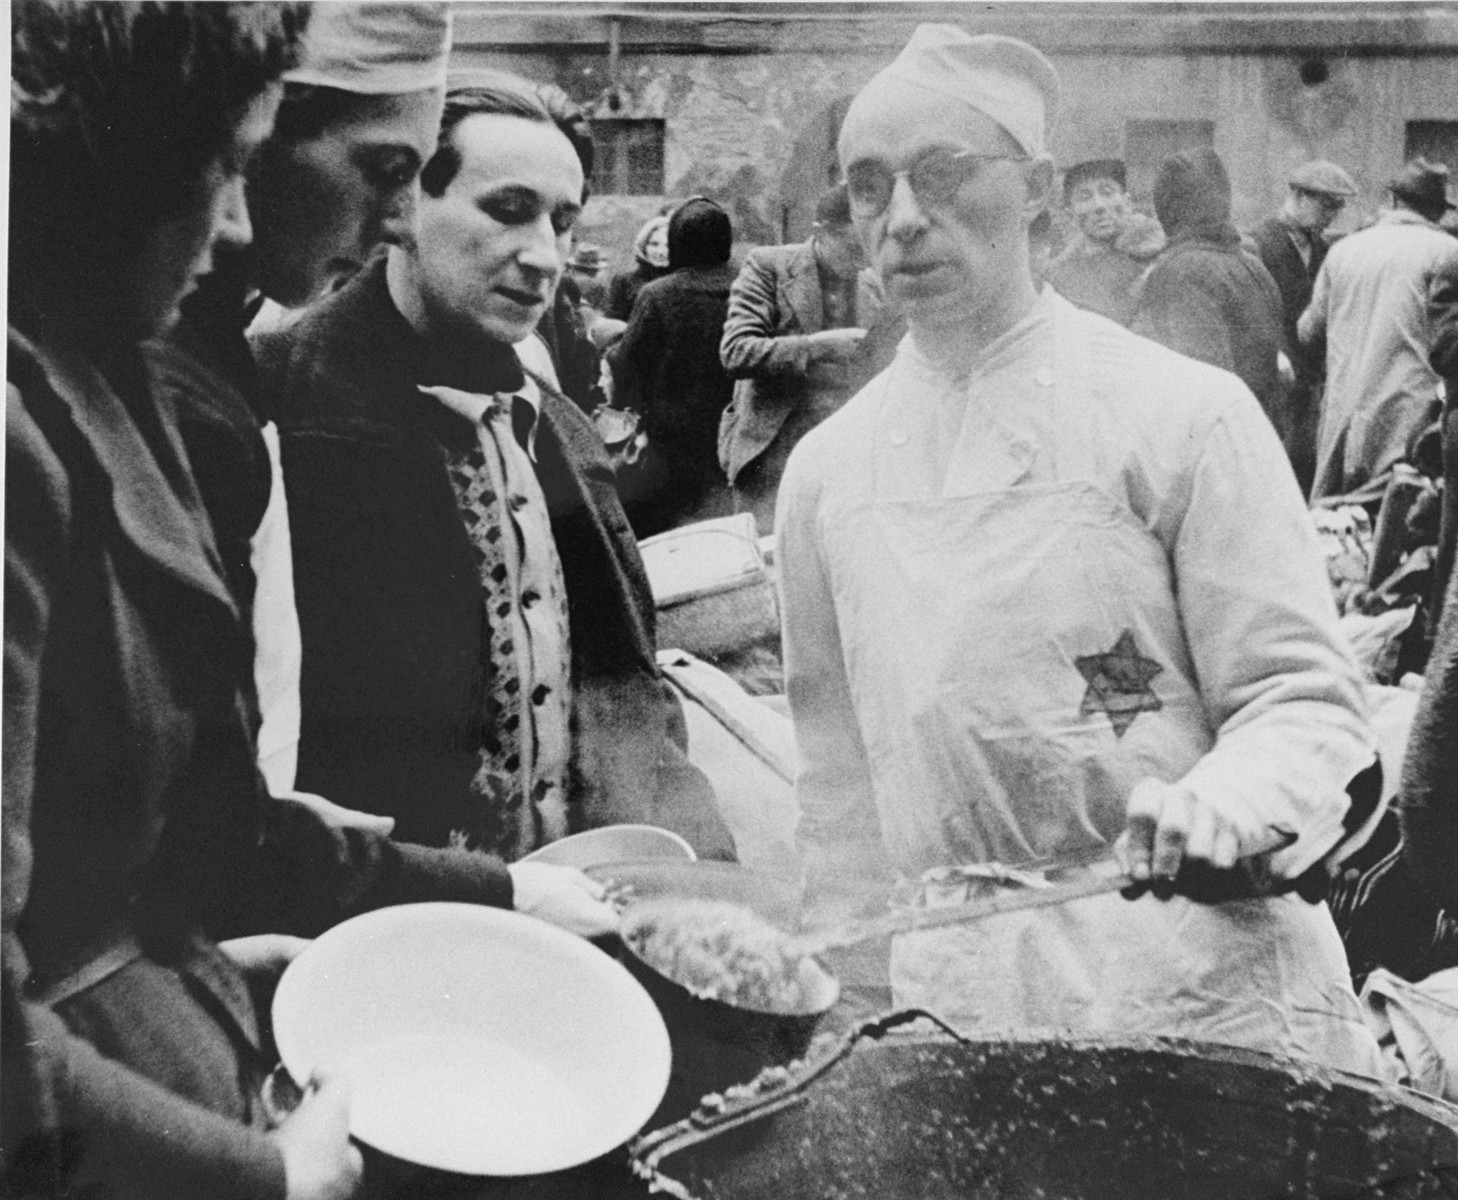 A prisoner wearing a cook's uniform doles out food in the ghetto courtyard to prisoners who have just arrived in Theresienstadt with a transport of Dutch Jews.  [oversized photo]   The man serving soup is possibly Karel Arnstein.